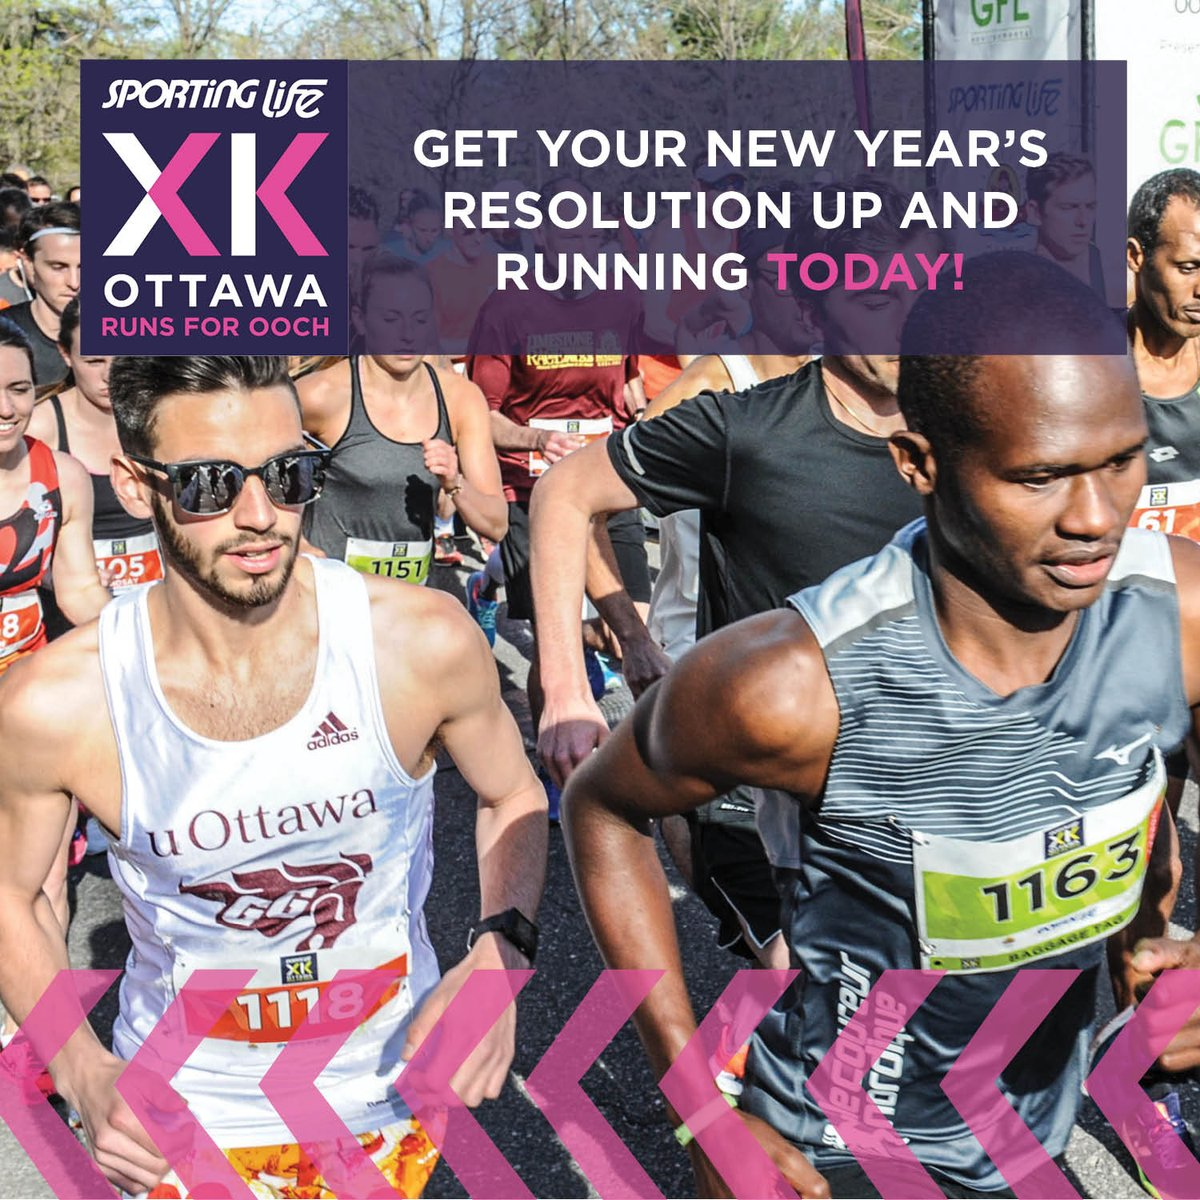 Have you registered for the #SL10K yet? The registration fee for #Ottawa goes up on February 1, so sign up today! Get some friends or colleagues together and register here: https://www.sportinglife10k.ca/    #NewYearNewYou #NewYearNewGoals